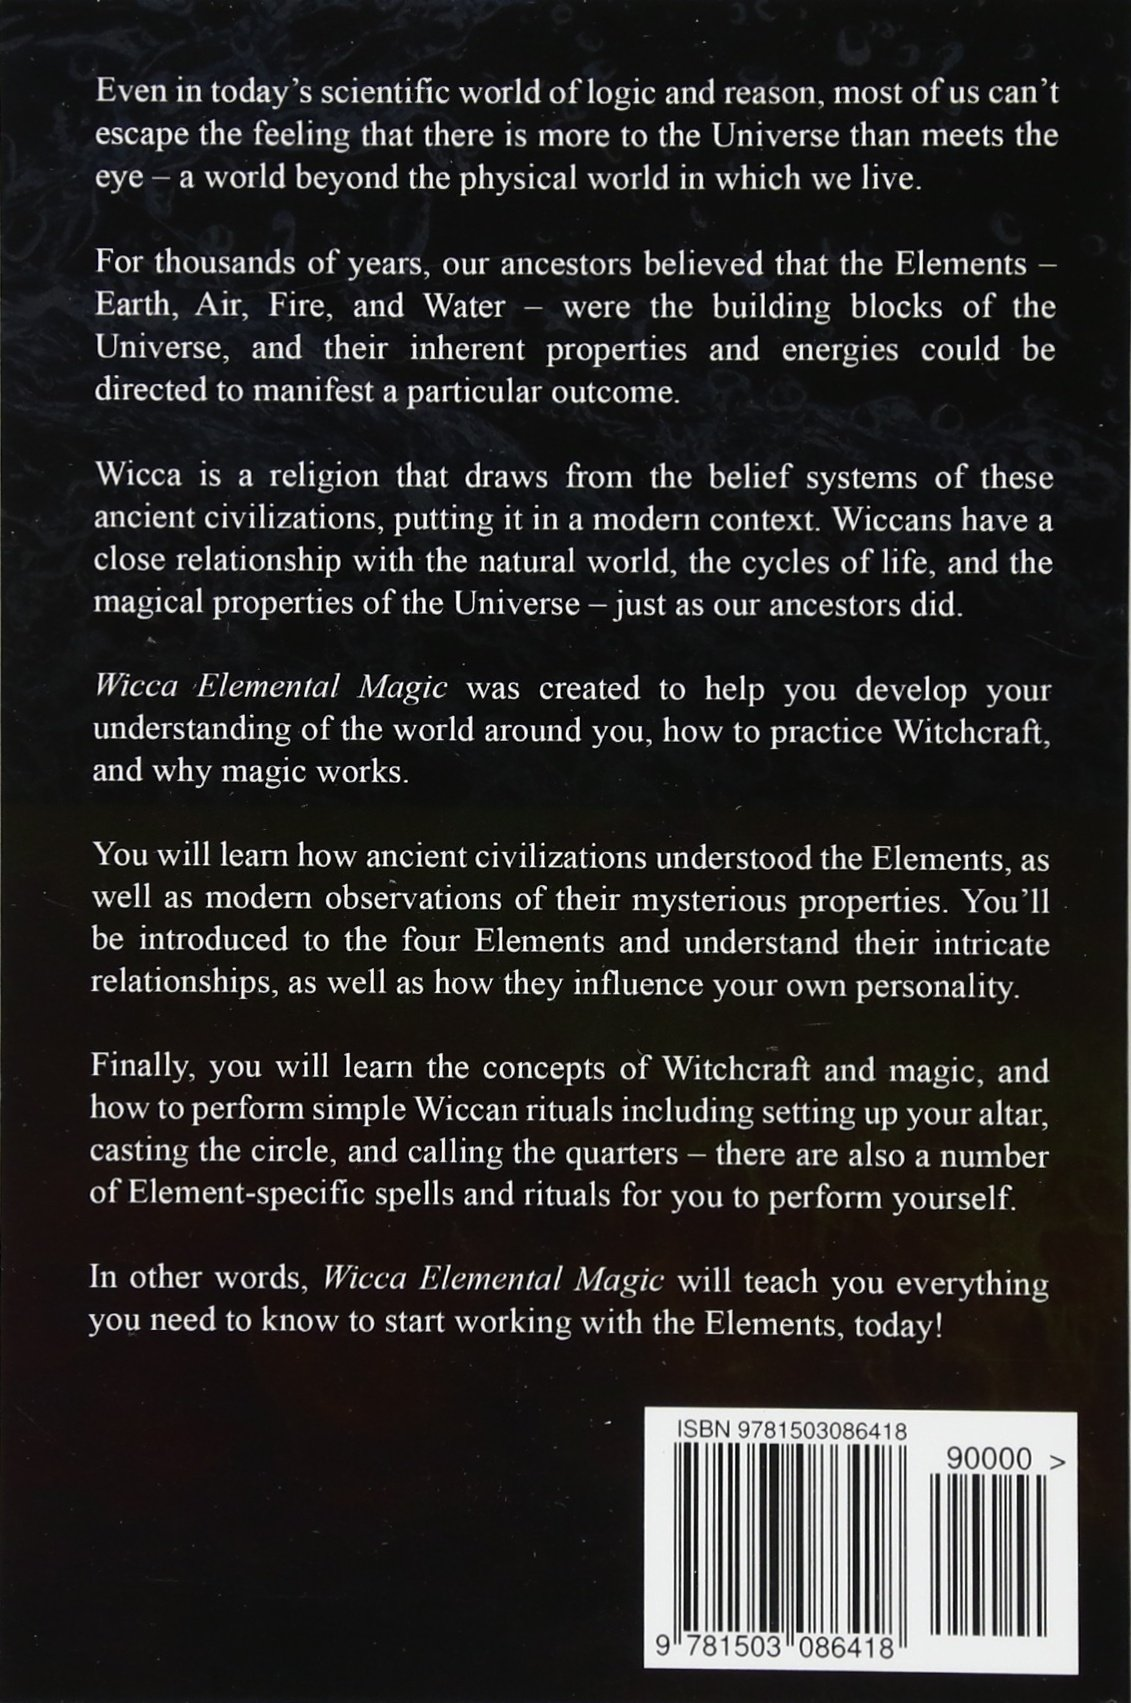 Wicca Elemental Magic: A Guide to the Elements, Witchcraft